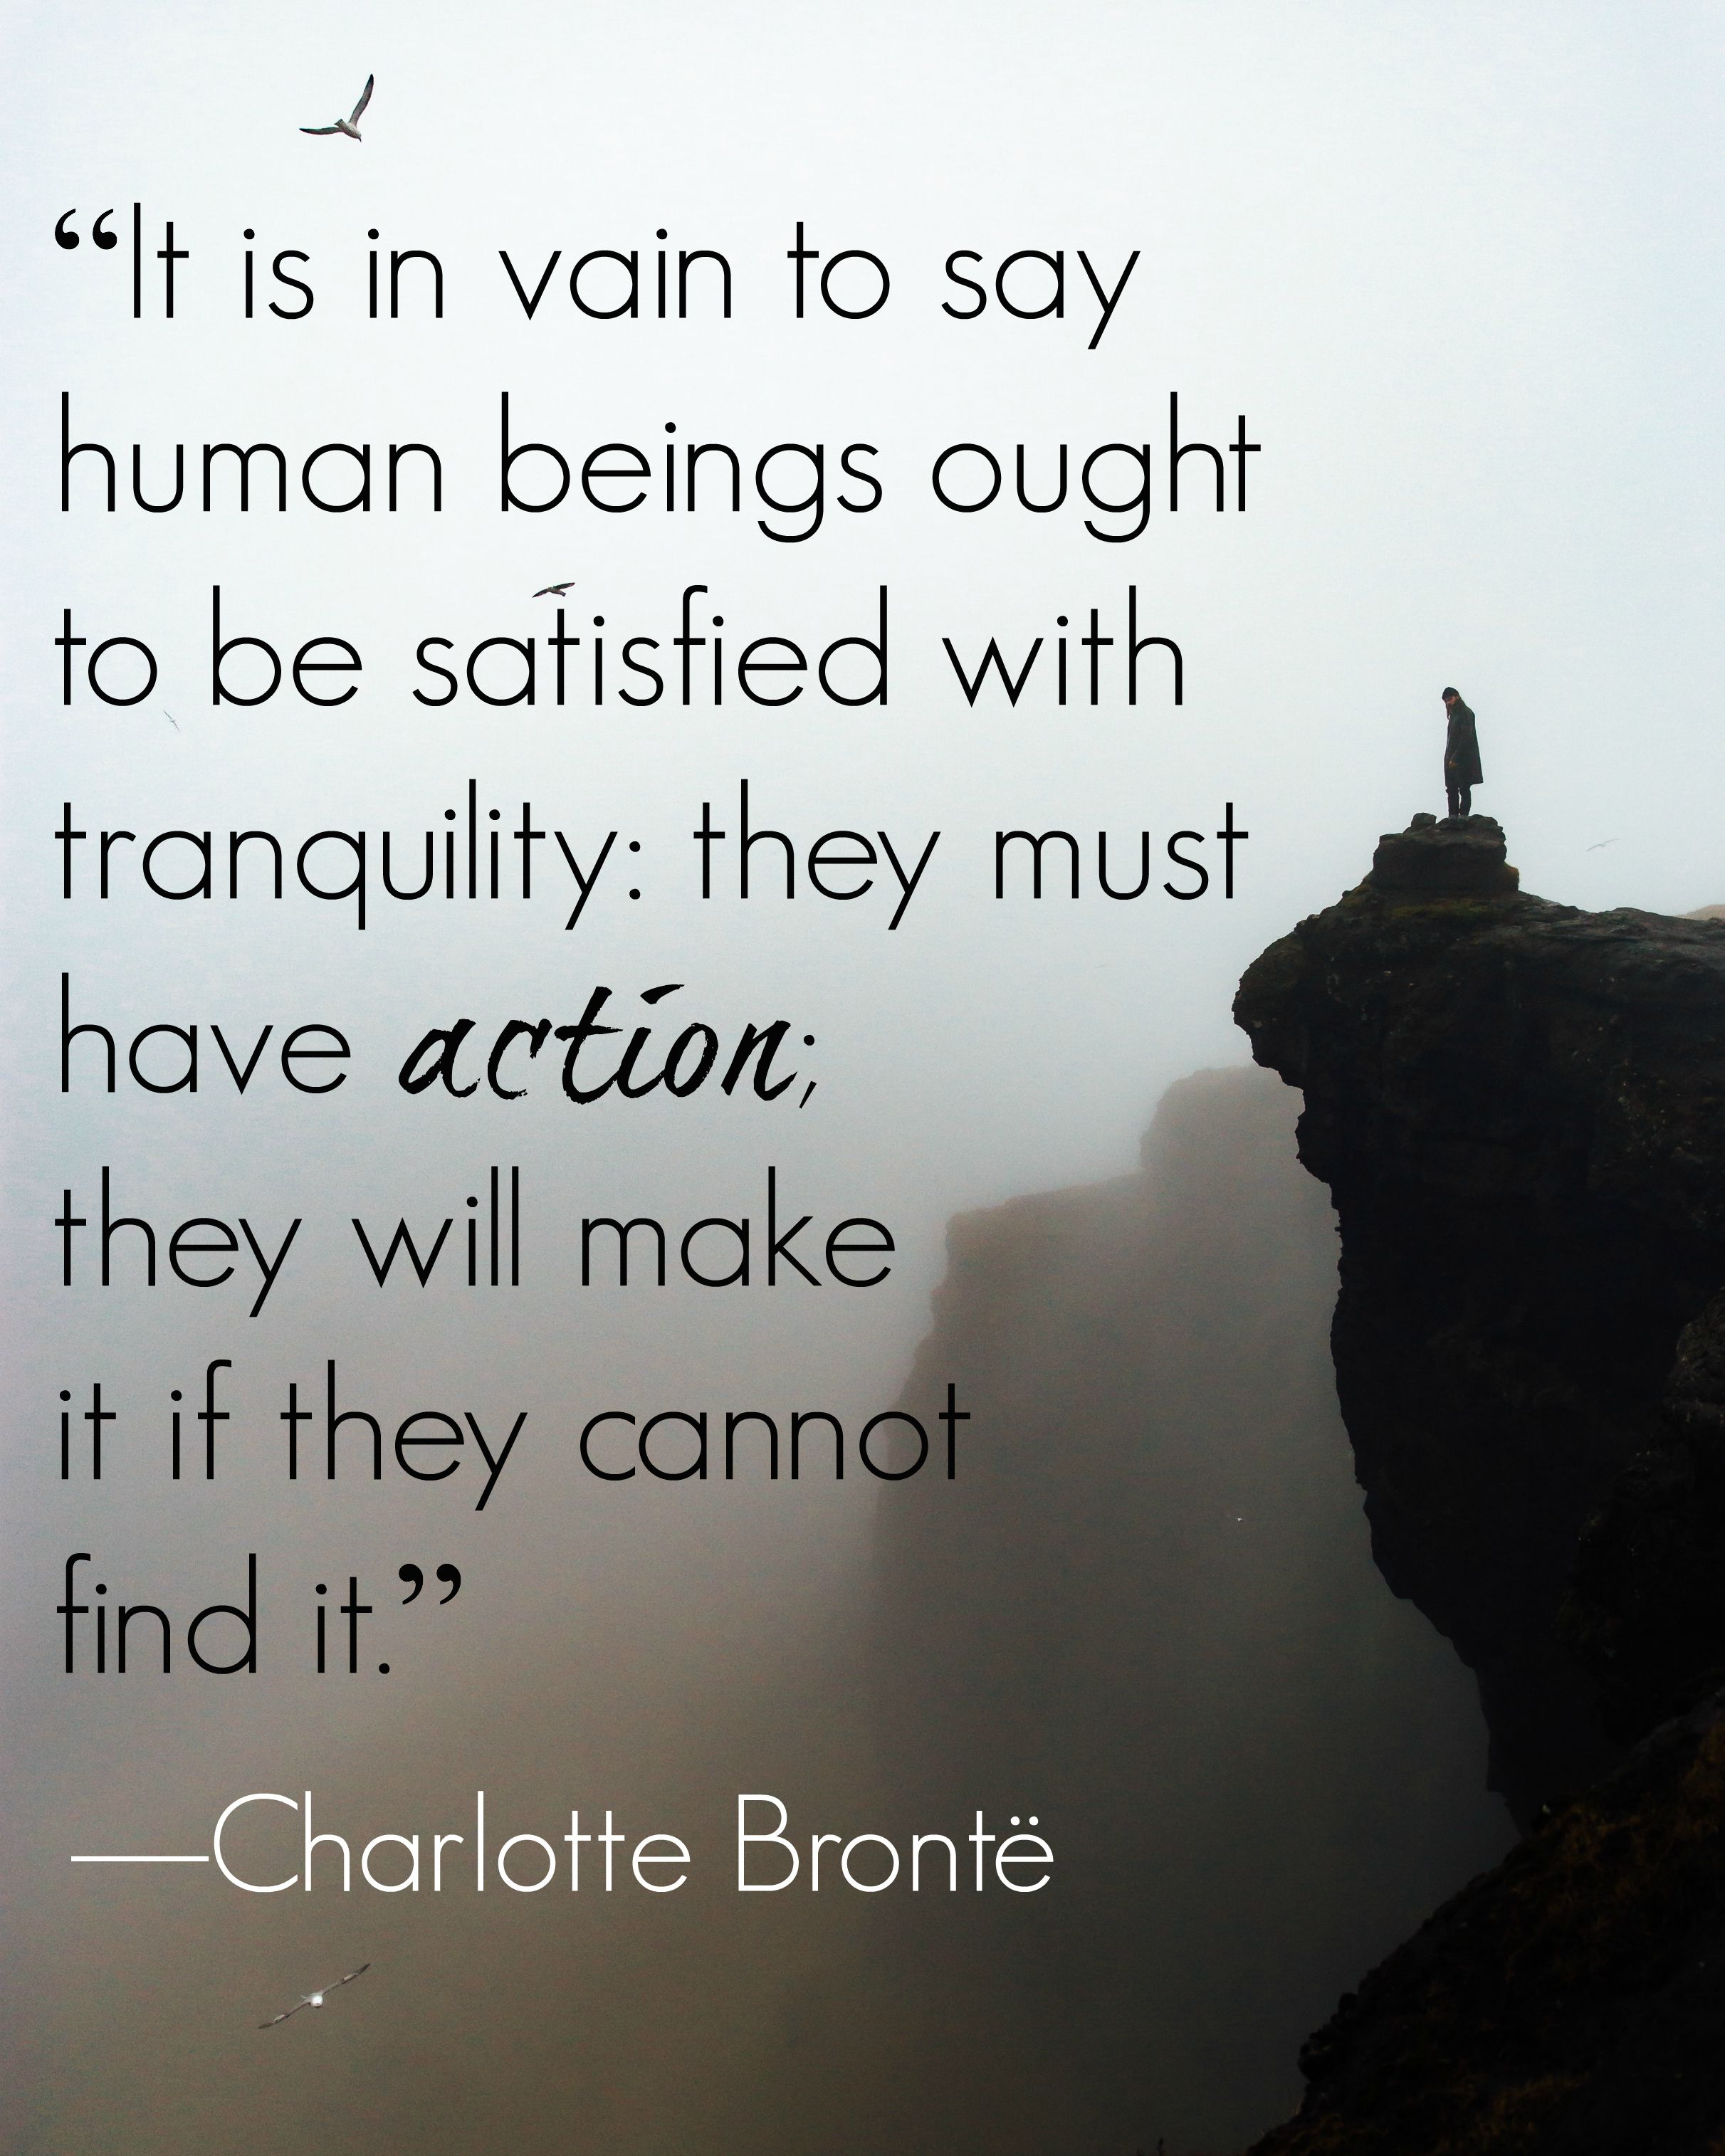 """Bronte quotes """"It is in vain to say human beings ought to be satisfied with tranquility: they must have action; they will make it if they cannot find it."""" Charlotte Bronte"""